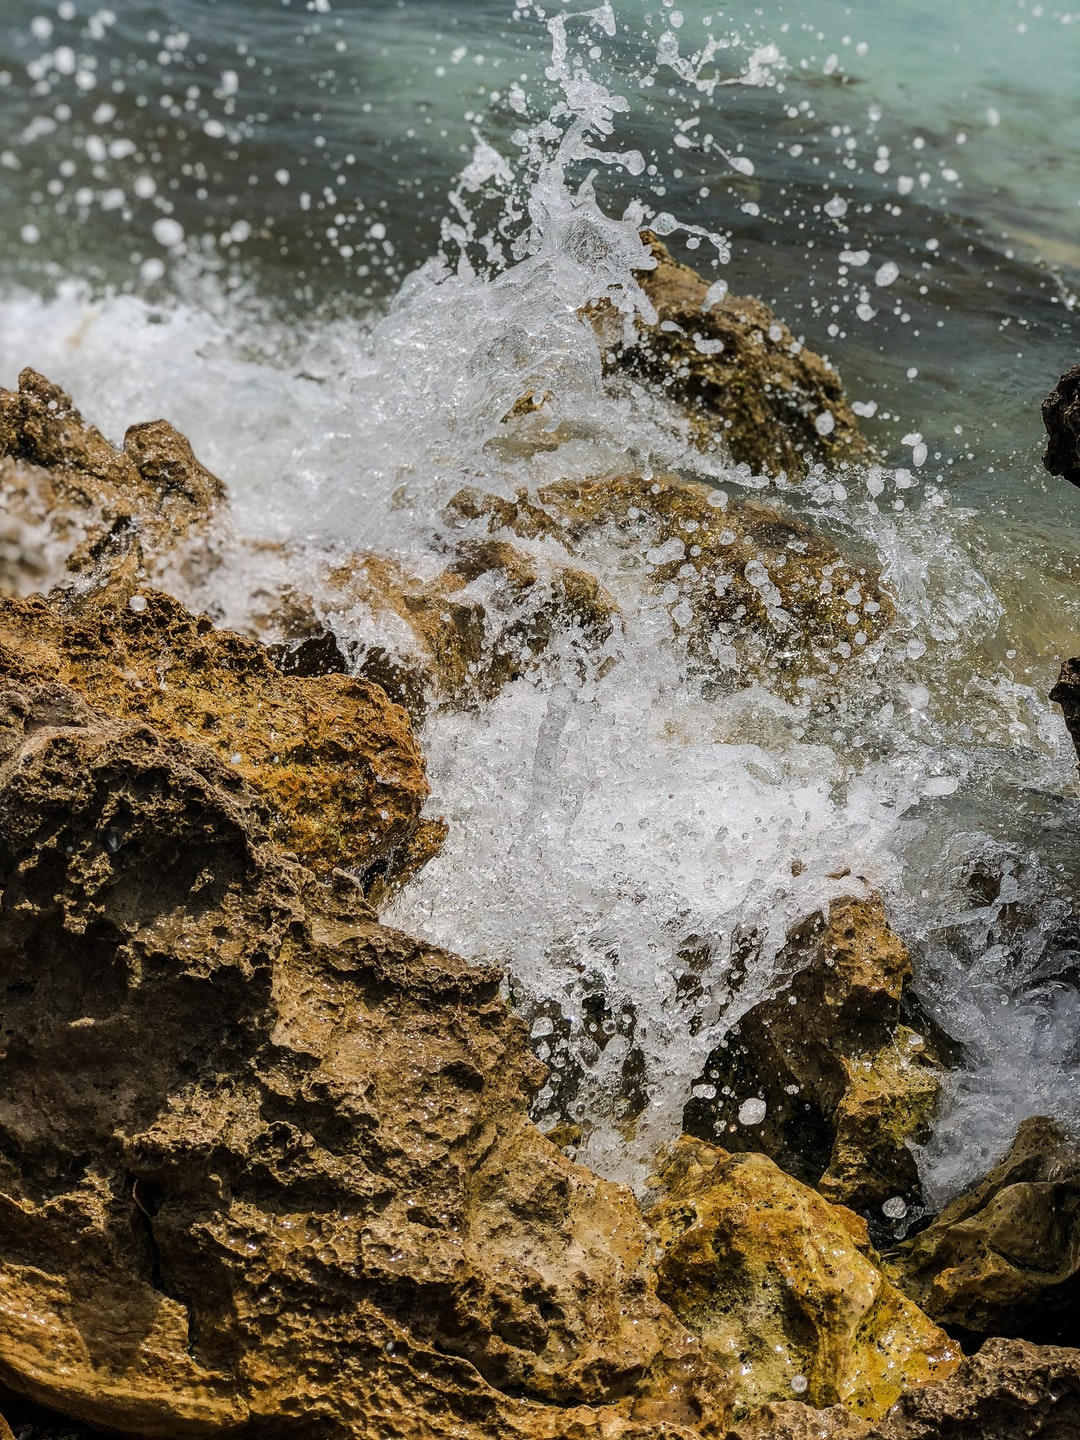 """I was enjoying a day at the beach and was lucky enough to be met by such beautiful rocks. They were screaming, """"Photograph me!"""" I complyed and captured this splash of water suspensed in the air, frozen in time."""